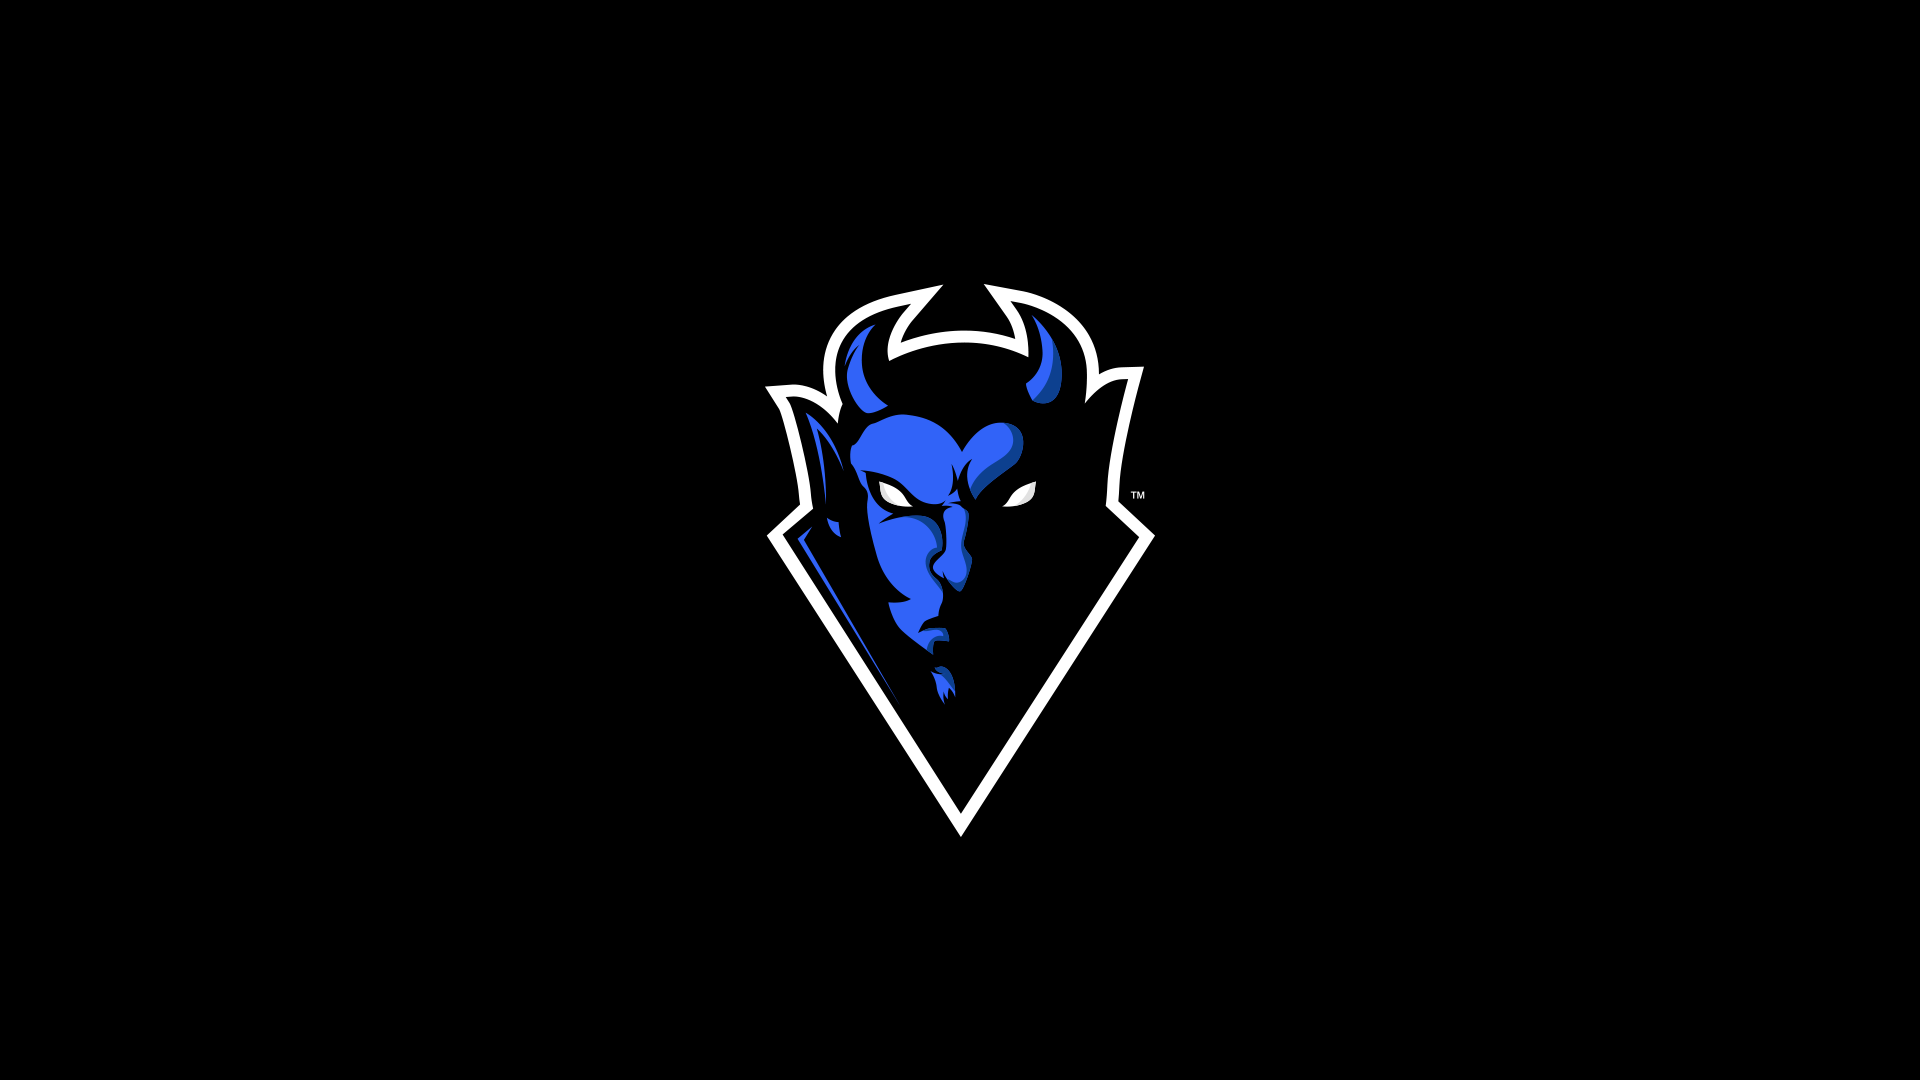 Travis howell devil mascot logo this is a devil mascot logo created with inspiration from other sports logos thank you for appreciations and comments voltagebd Gallery